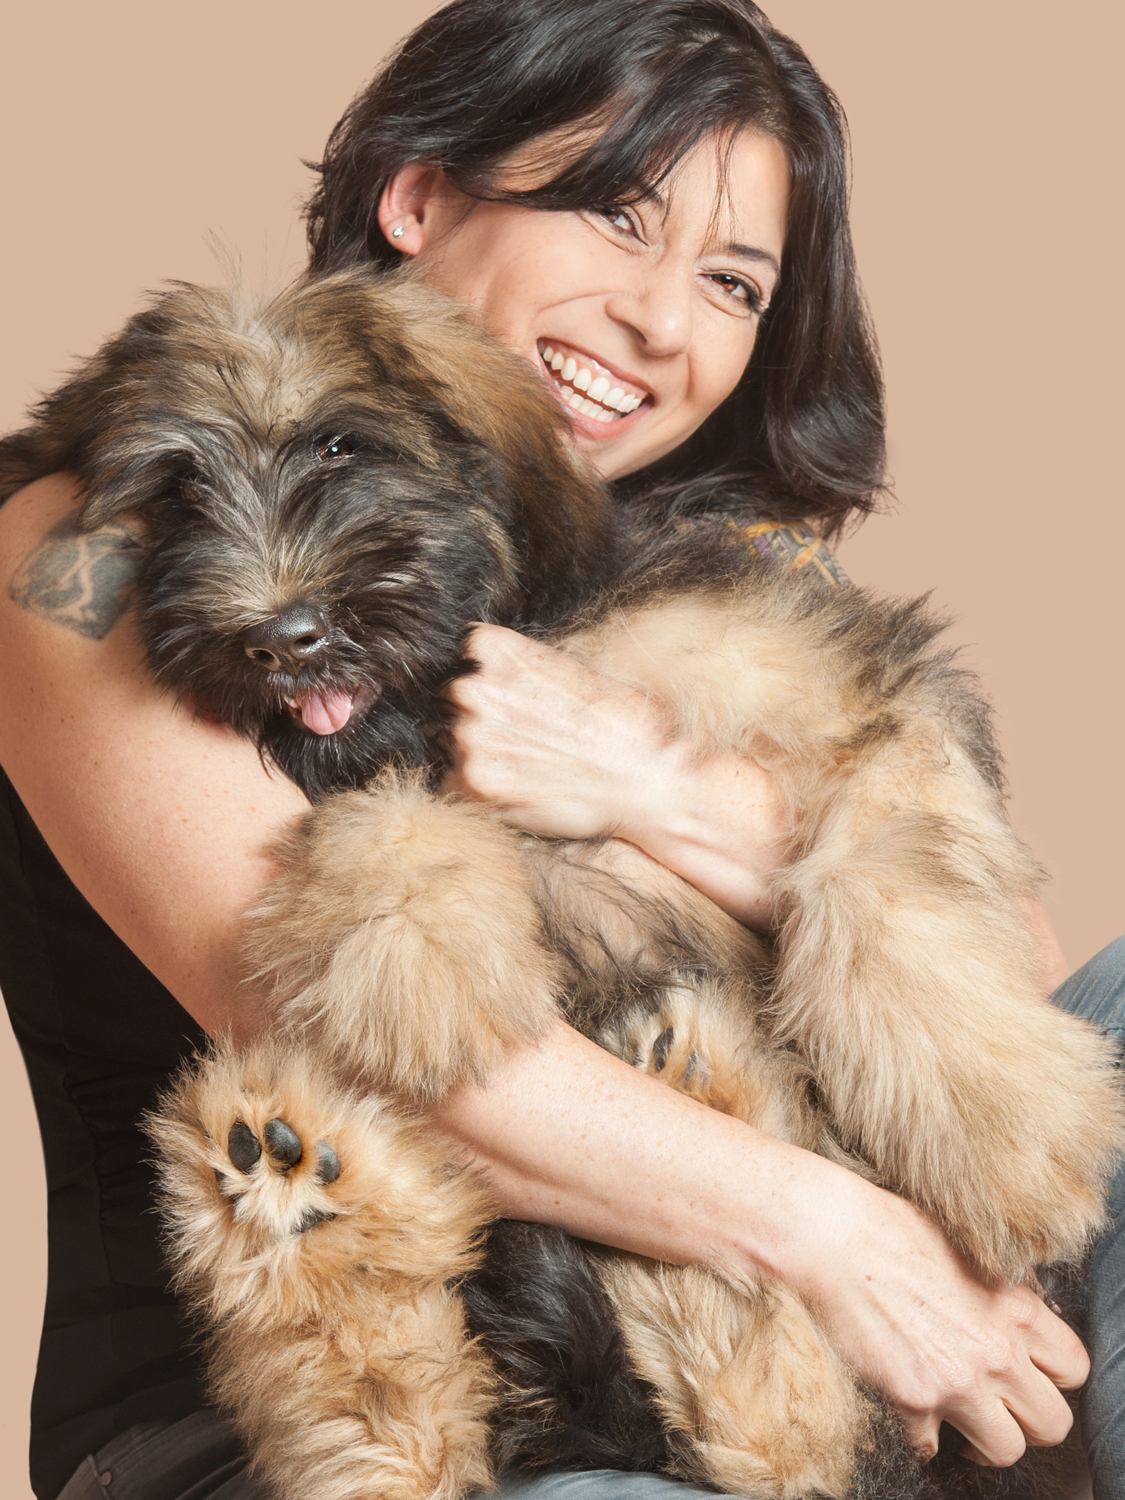 Paola-Paladini-Studio-Woman-and-dog-hugging